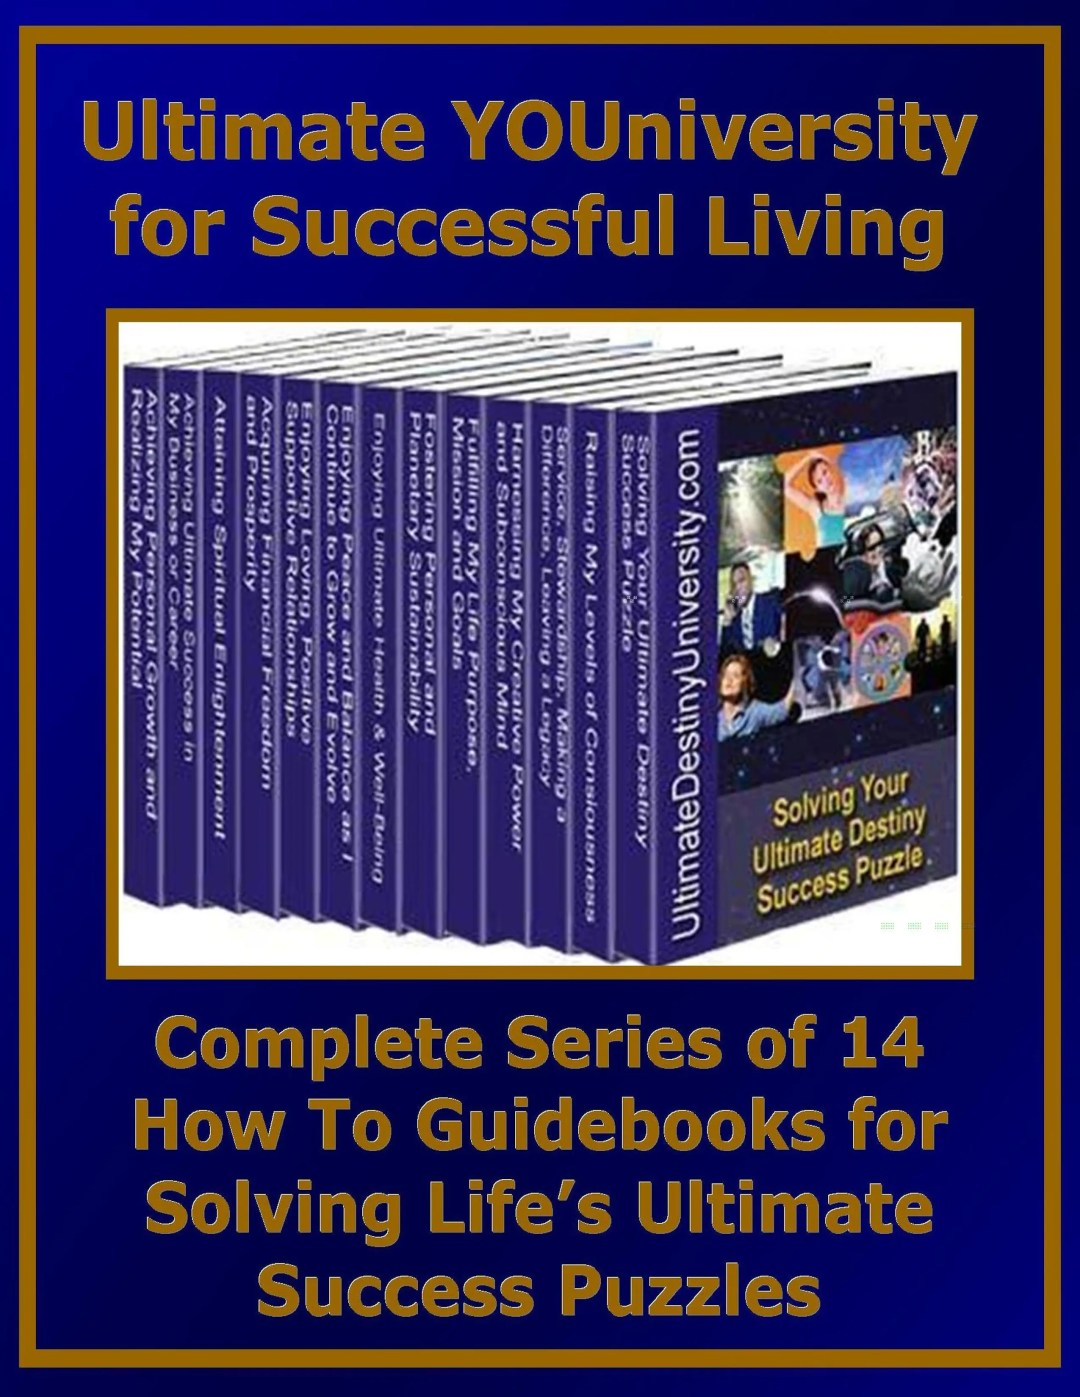 Complete Series of 14 Guidebooks Outlining Each of the 14 Categories